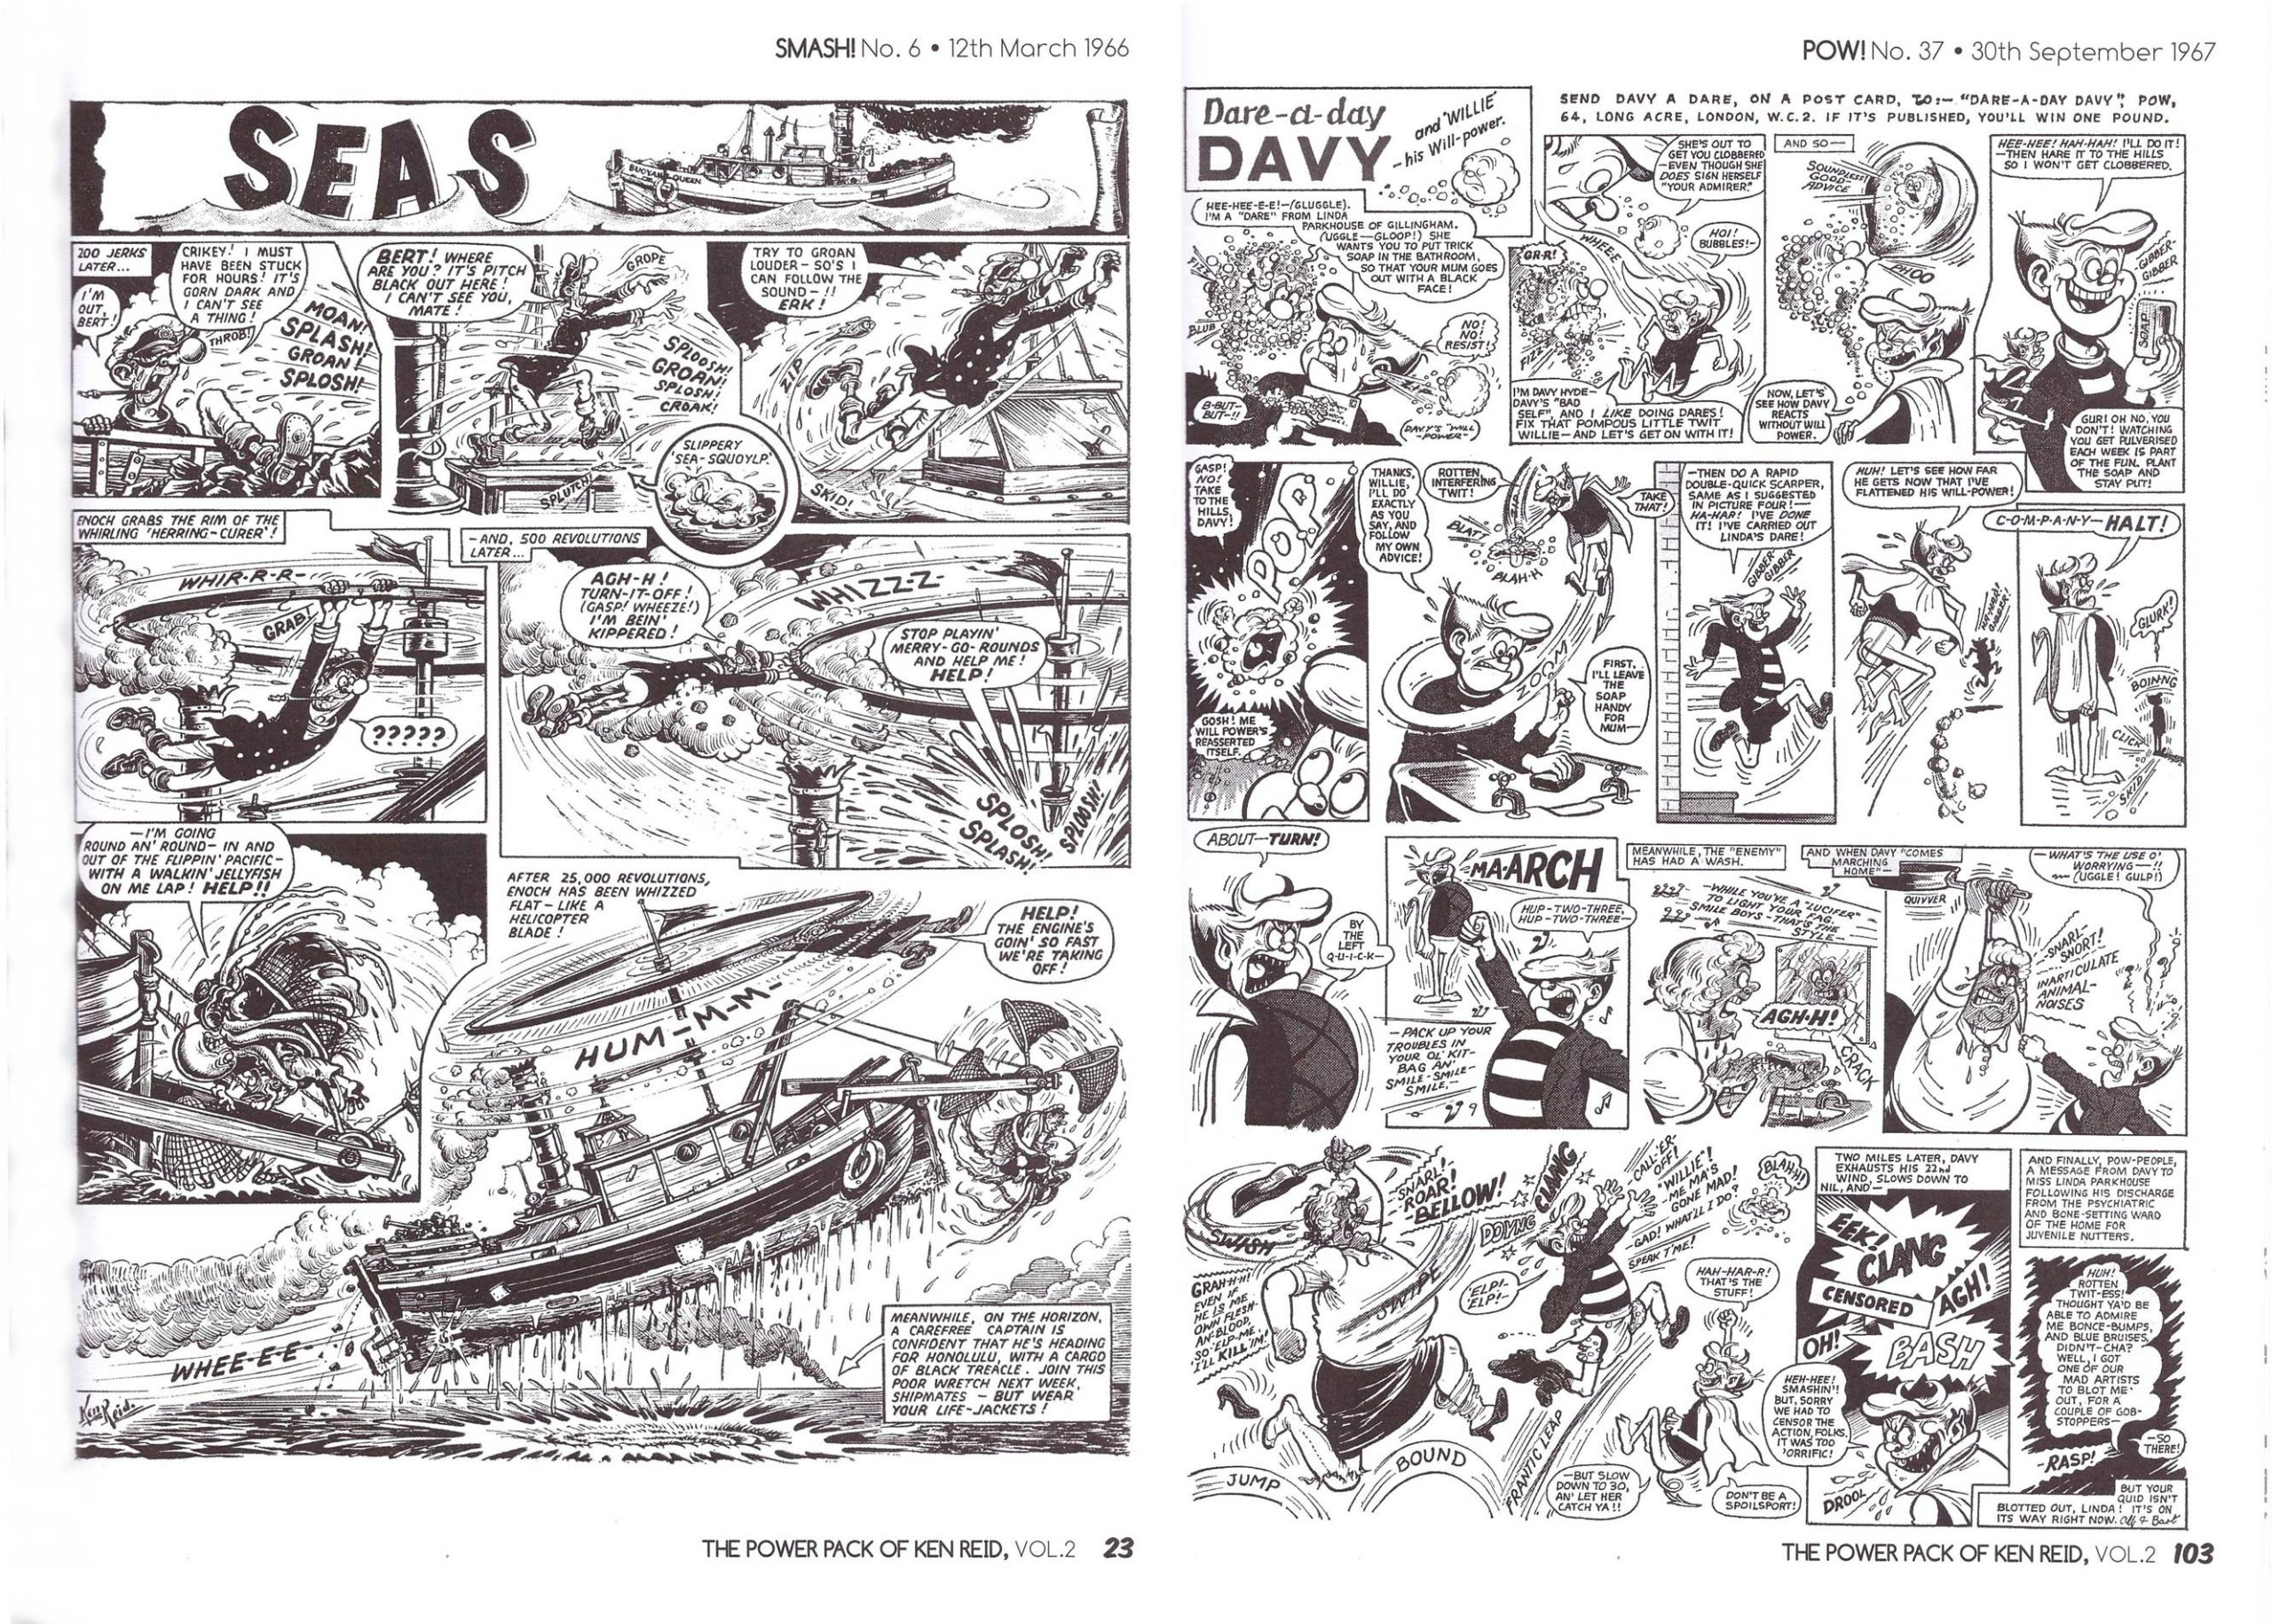 The Power Pack of Ken Reid Volume 2: Queen of the Seas, The Nervs and Dare-A-Day Davy review